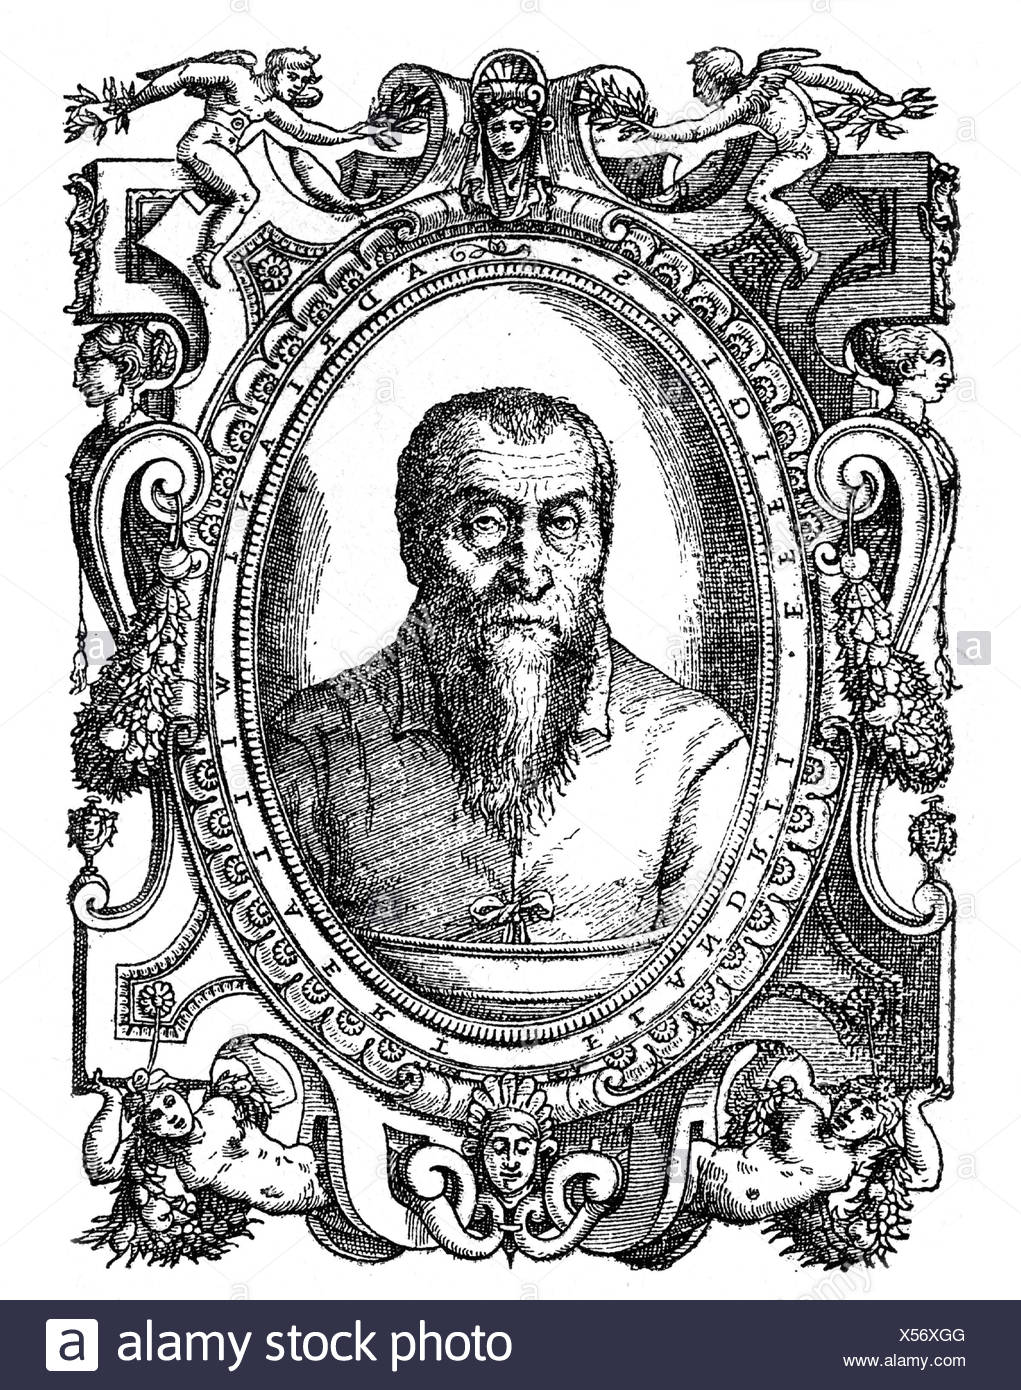 Gardano, Antonio, 1538 - 1569, Italian composer and printer, portrait,  copper engraving Adrian Willaert, 16th century, , Artist's Copyright has  not to be ...